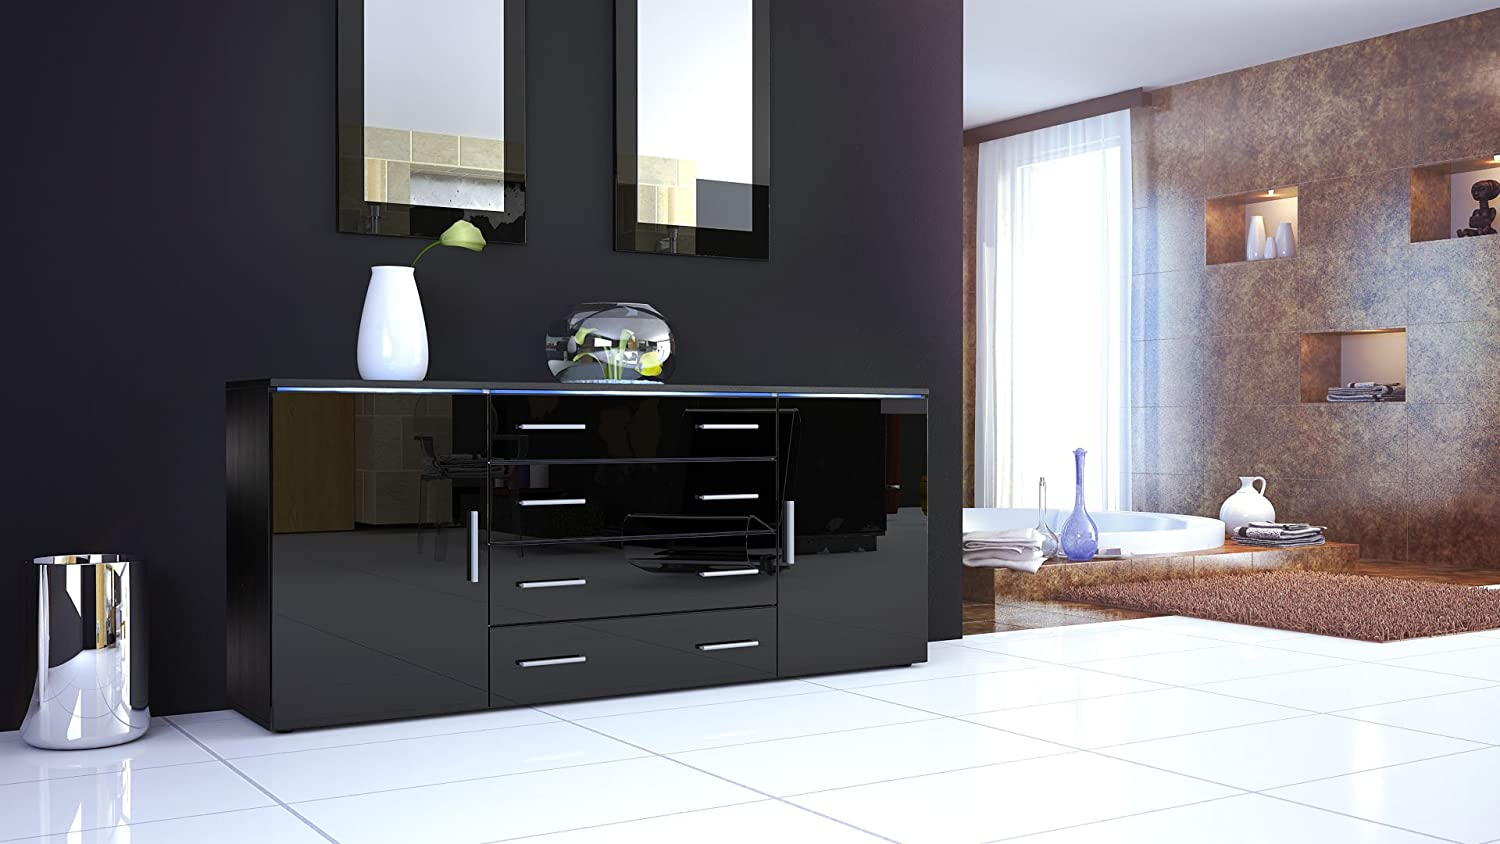 Sideboard Chest Of Drawers Faro V Carcass In Black Matt Fronts - Black gloss chest of drawers